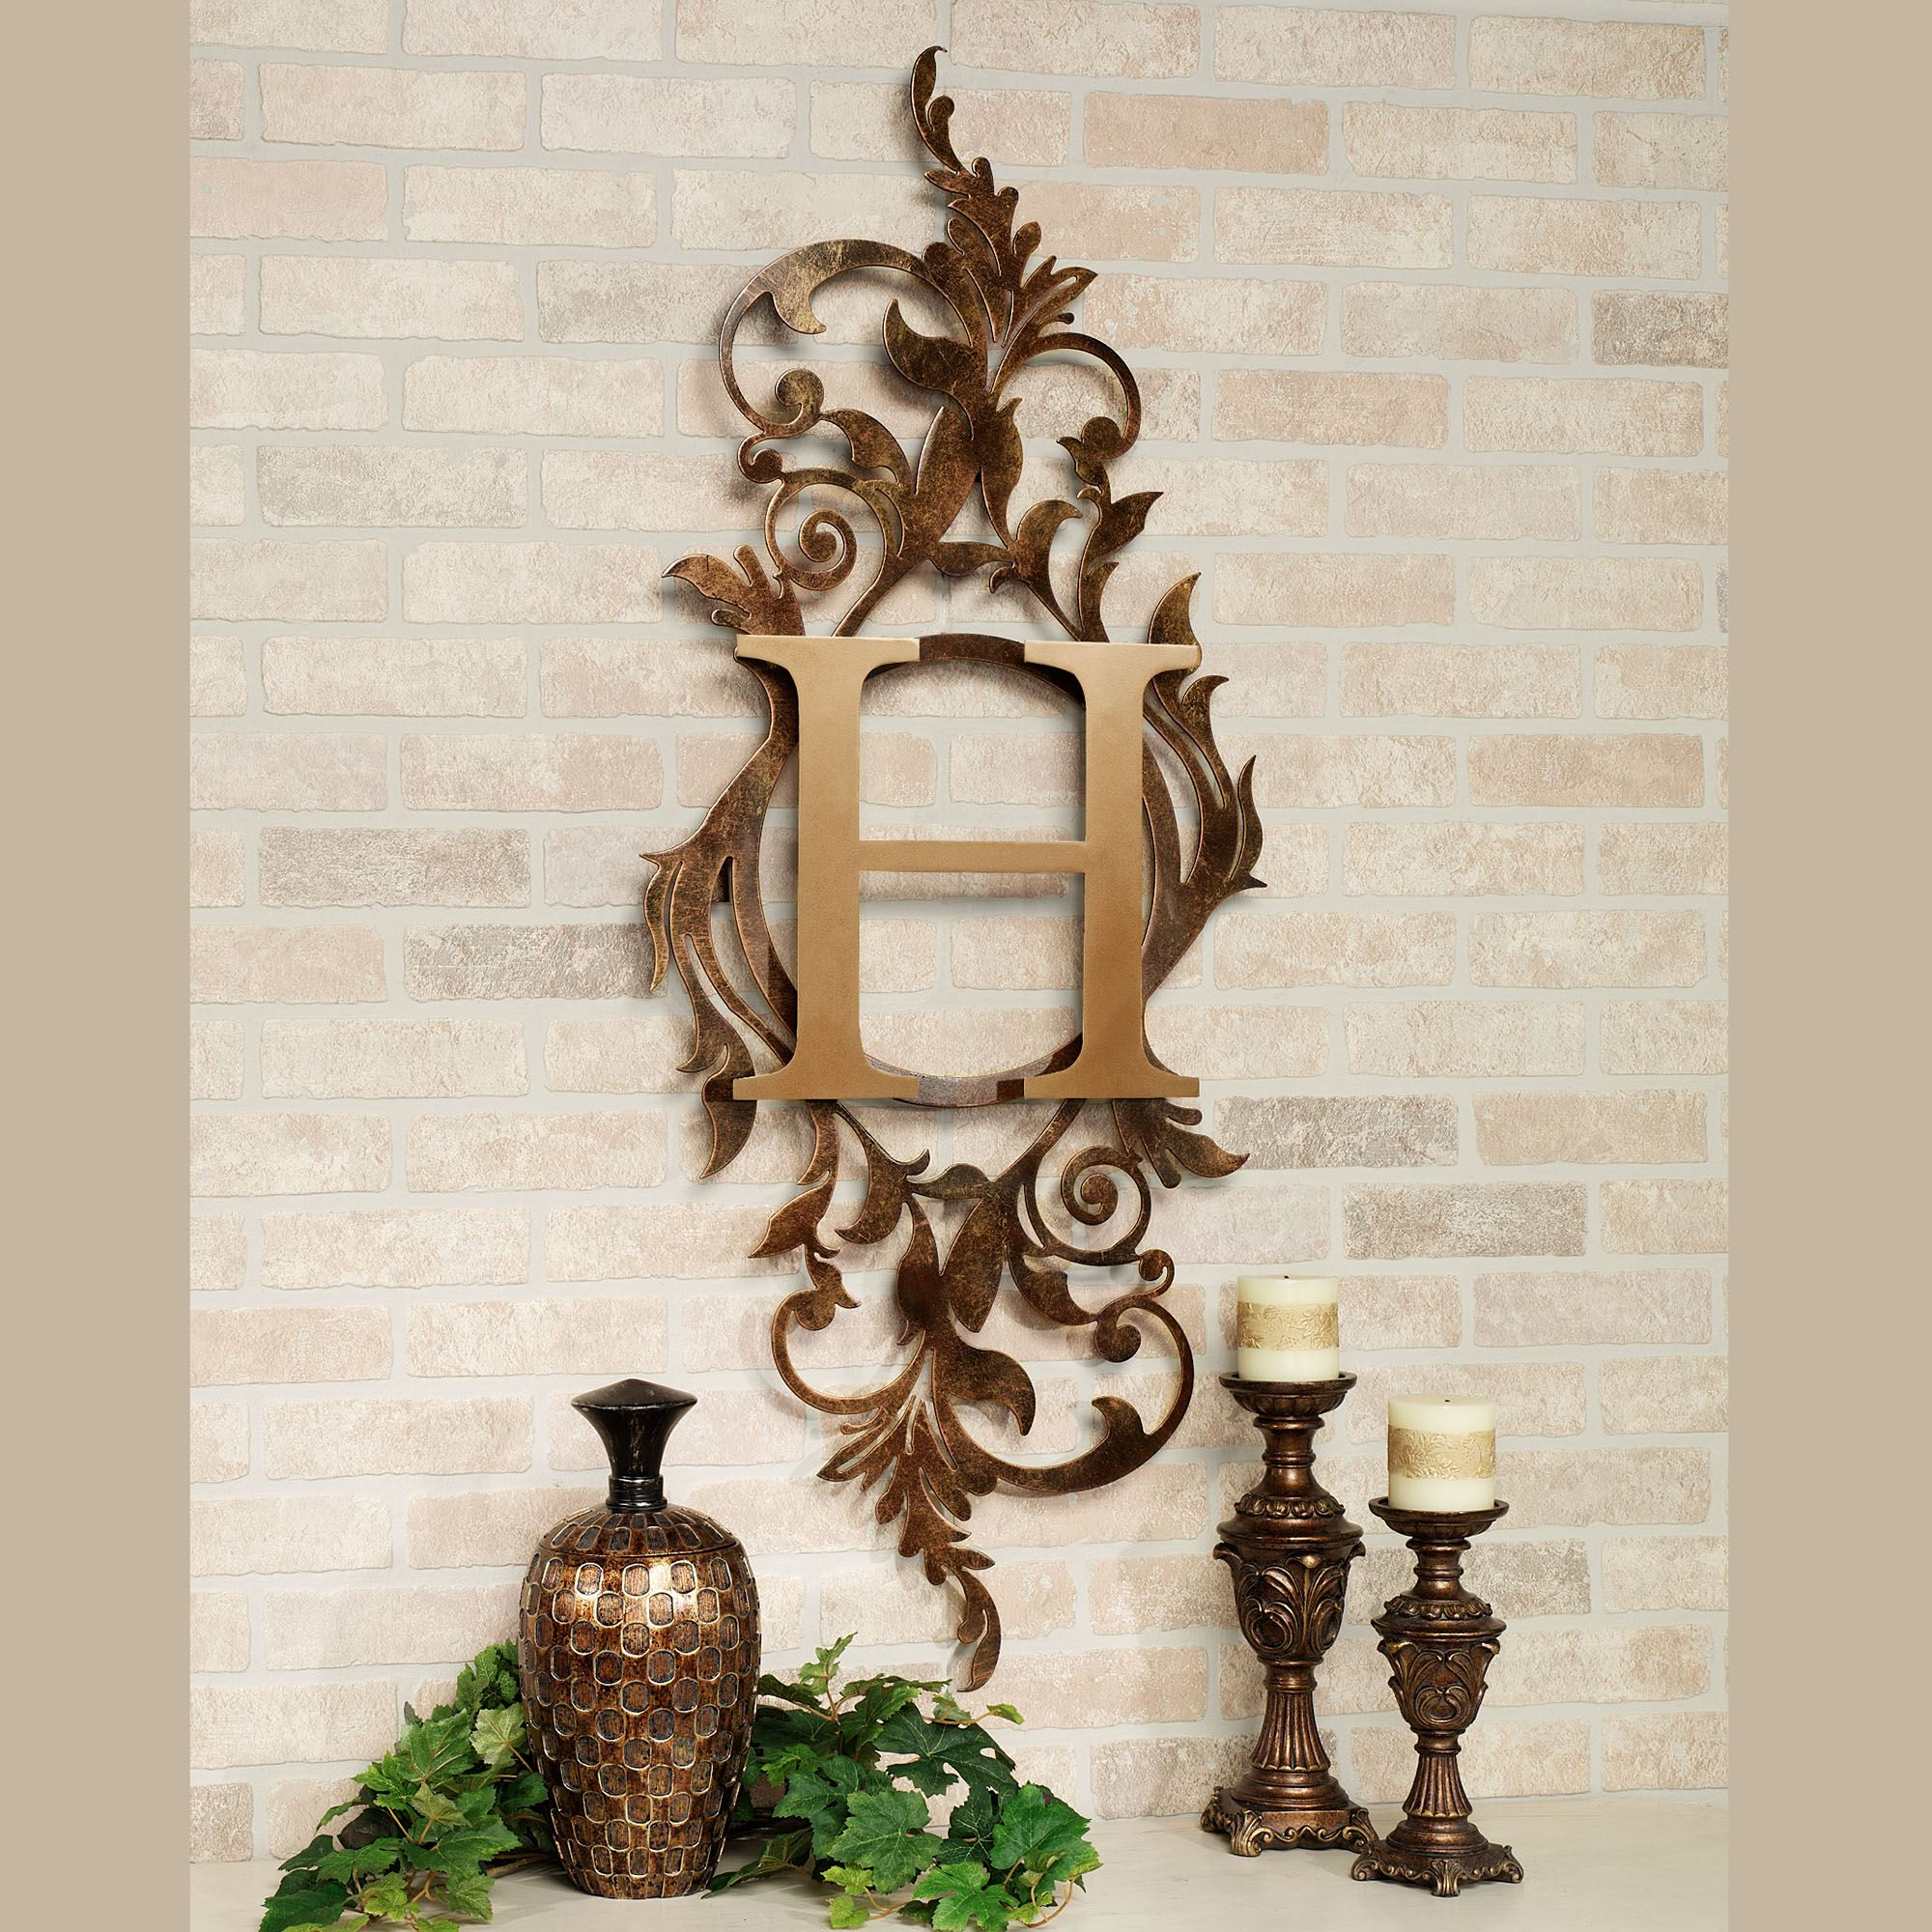 Vertical Metal Wall Art Part - 18: Meglynn Vertical Wall Art Sign Gold-Bronze. Touch to zoom